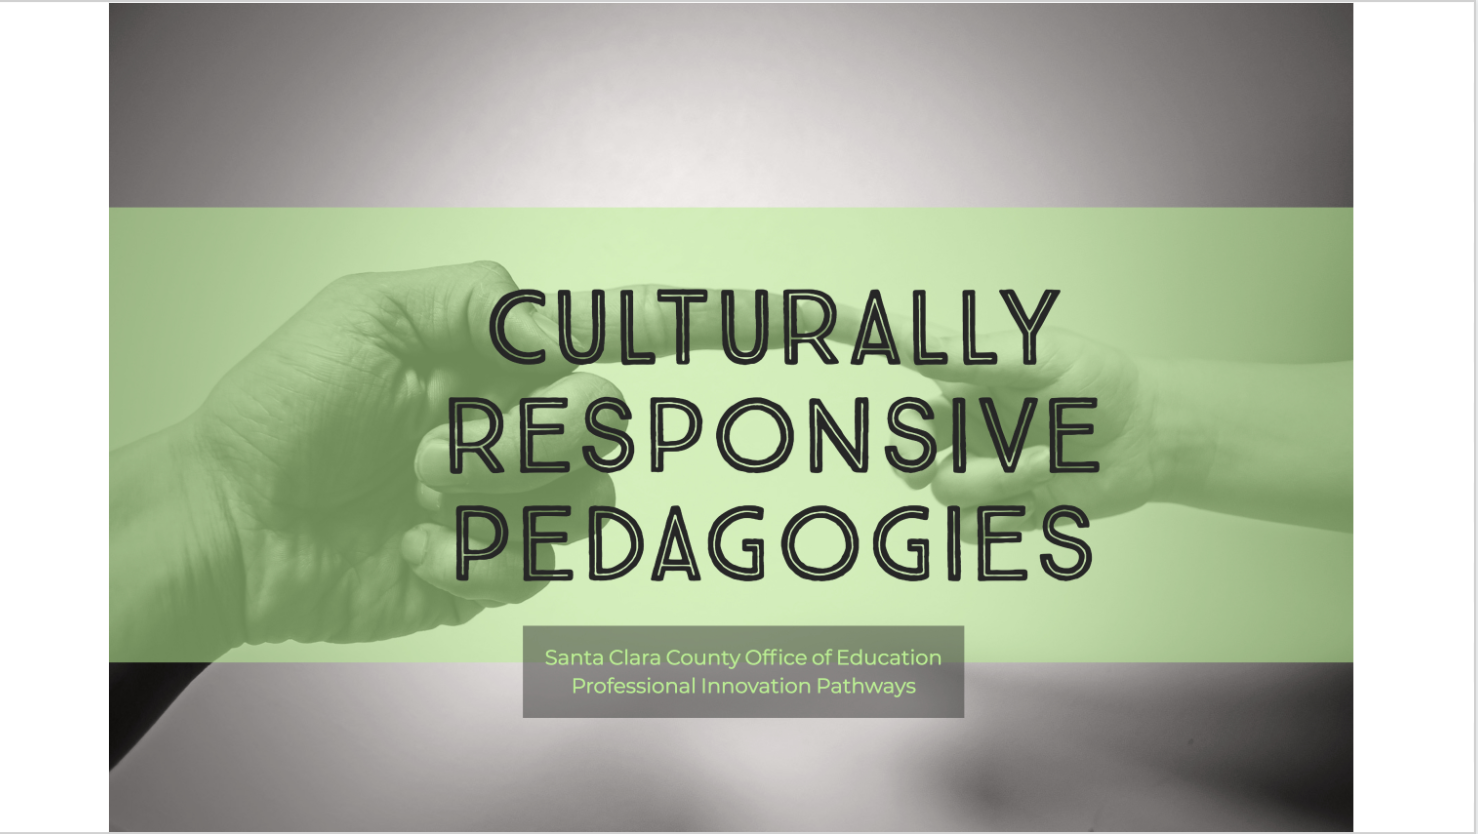 One Pathway to Cultural Responsive Pedagogies